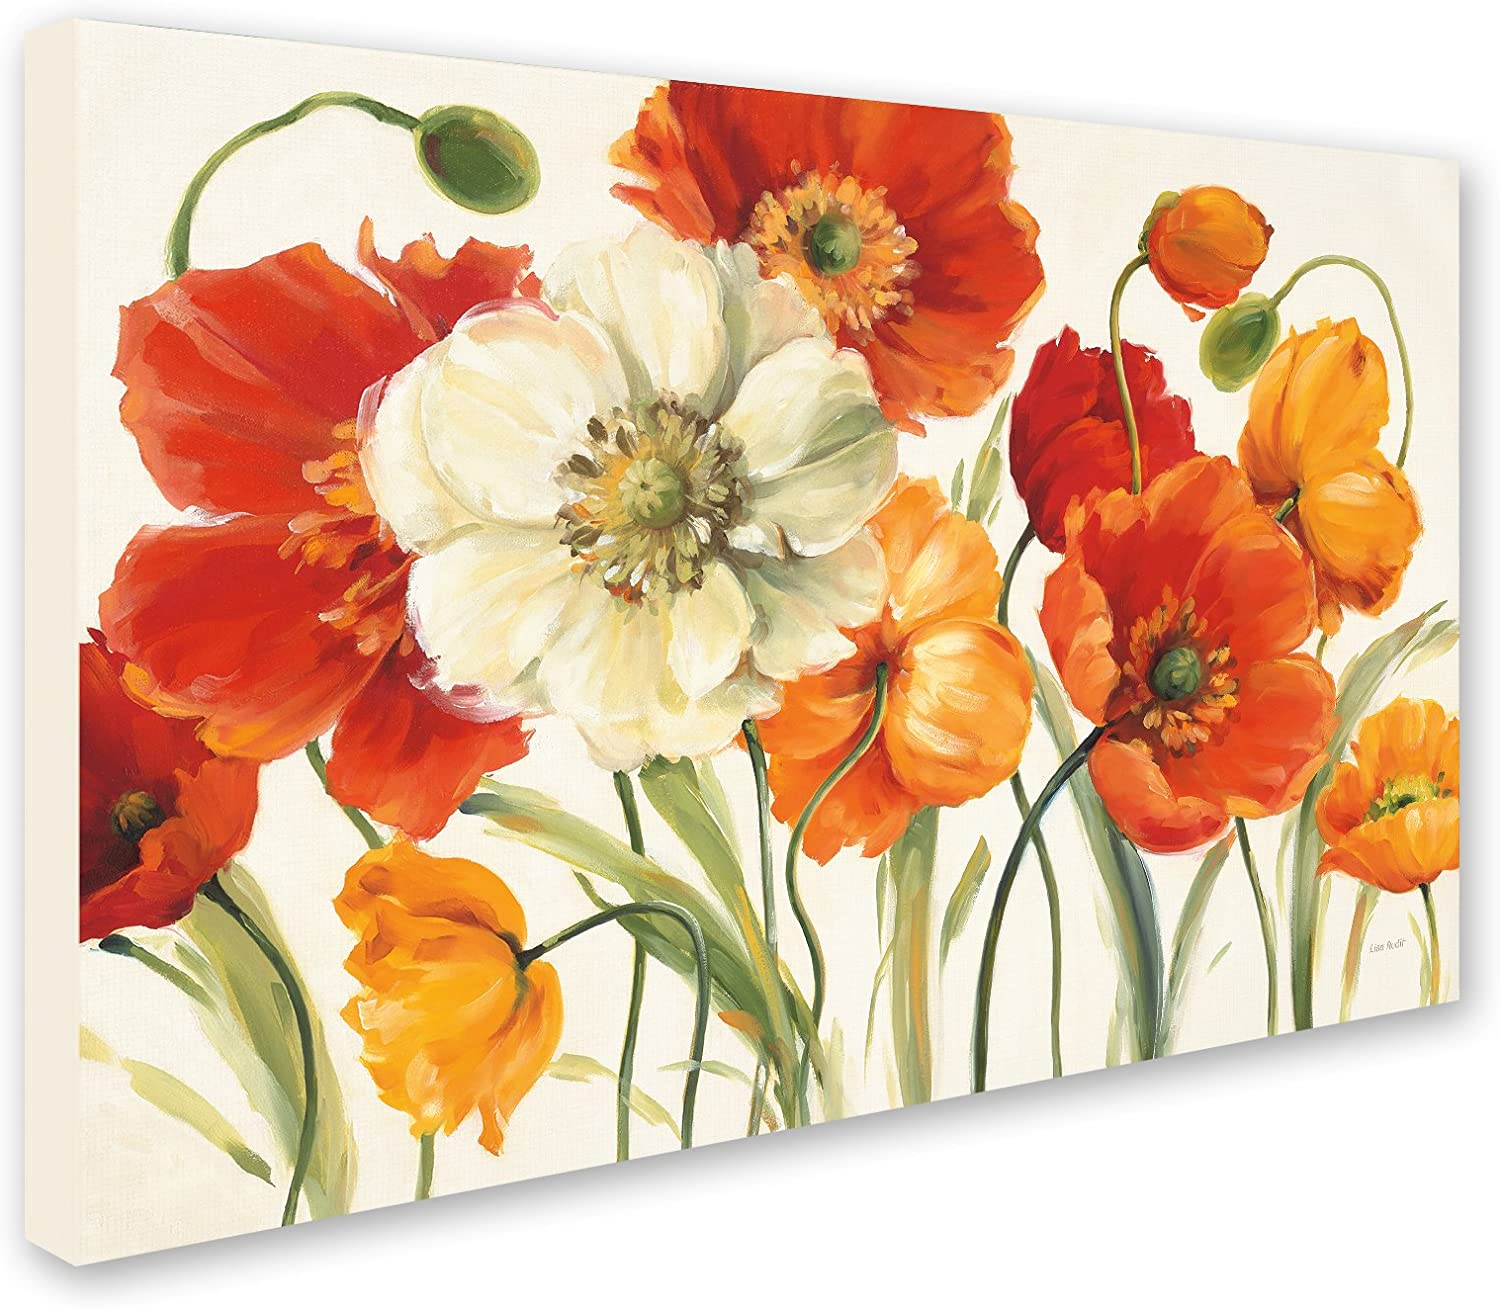 Amazon Com Poppies Melody I Wall Decor By Lisa Audit 16 X 24 Canvas Wall Art Posters Prints